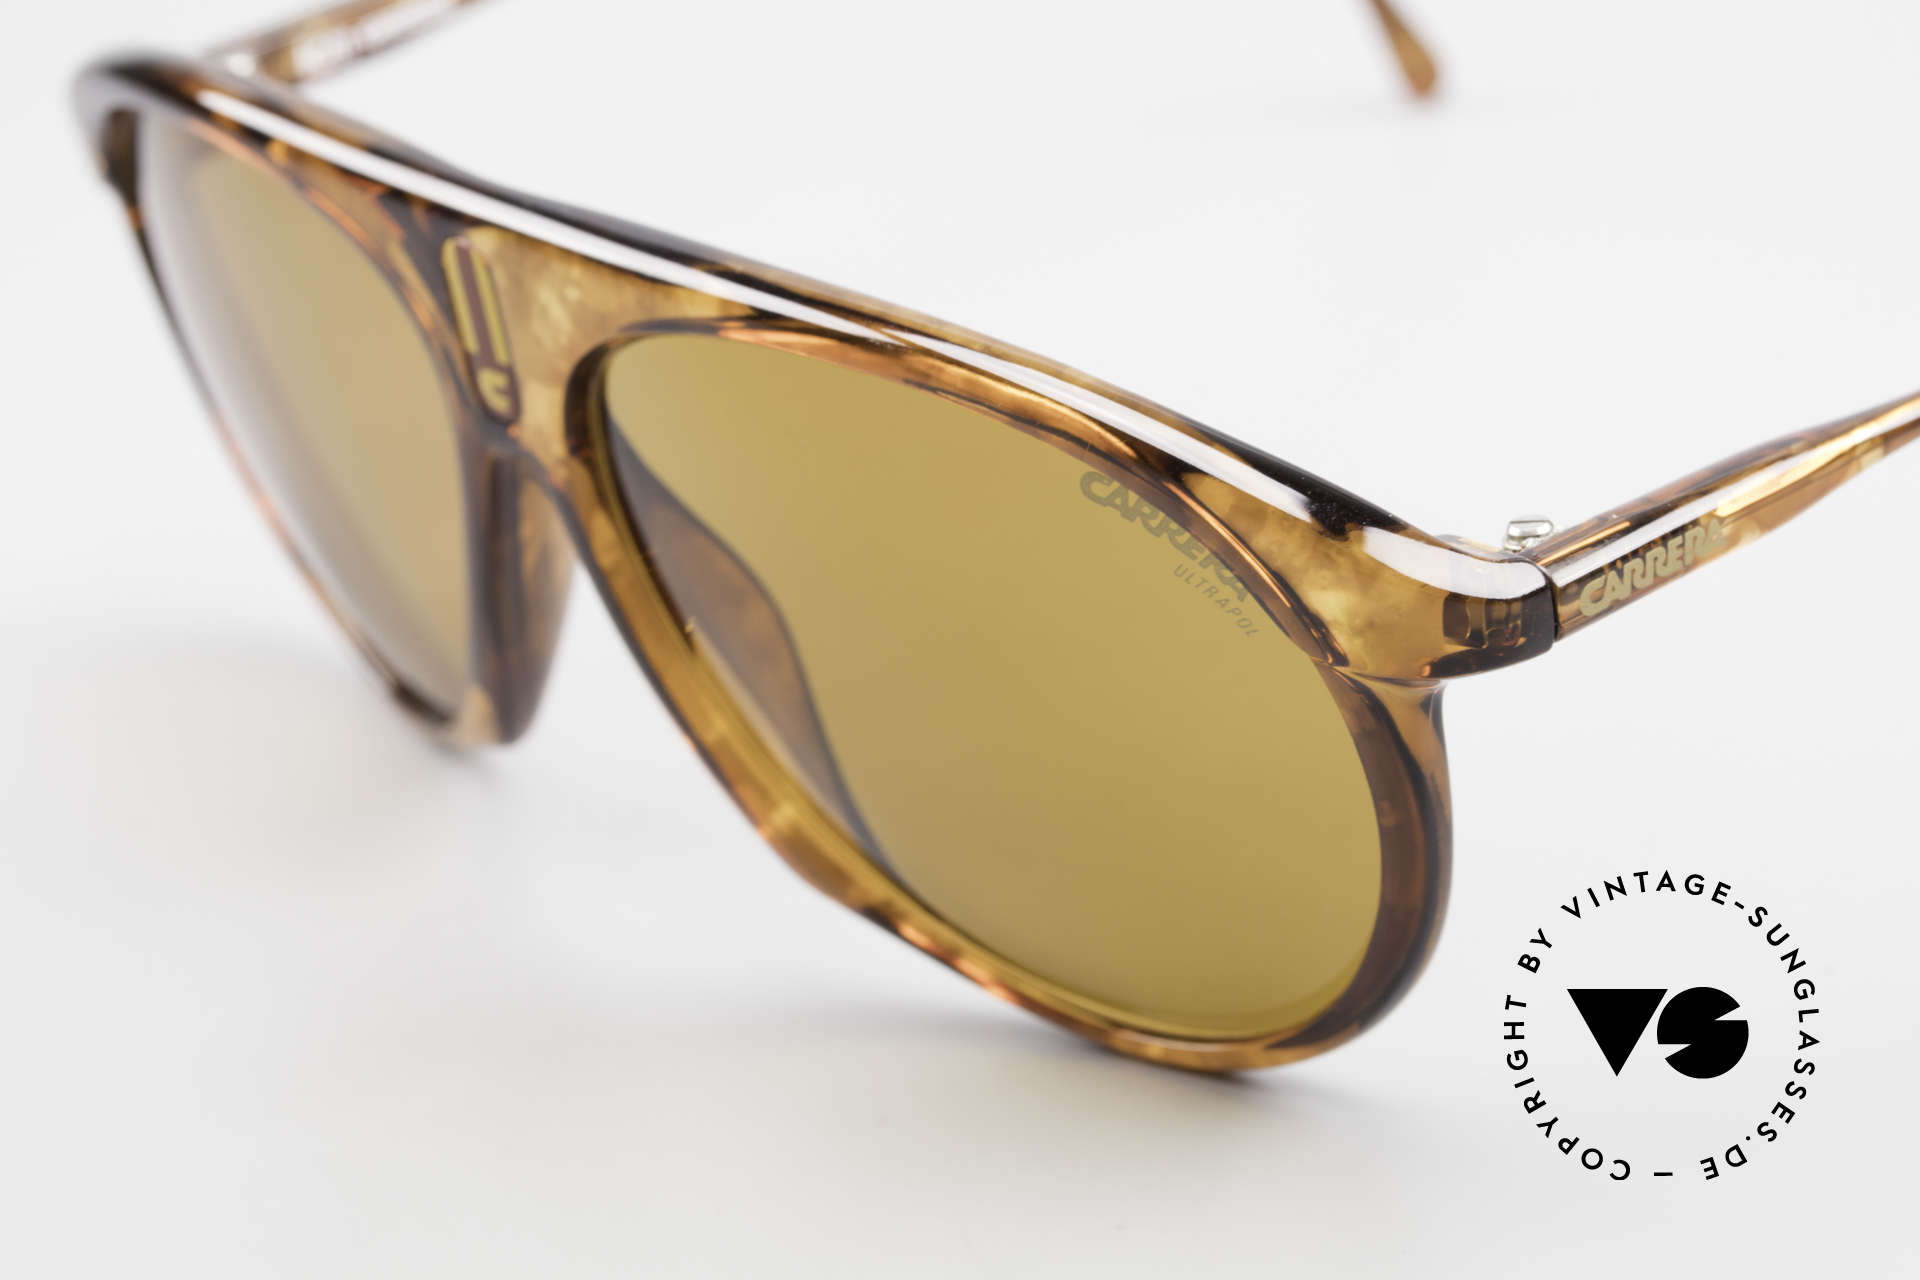 Carrera 5427 Polarized Sports Shades 80's, 1x brown ULTRAPOL & 1x C-Vision gray-gradient, Made for Men and Women